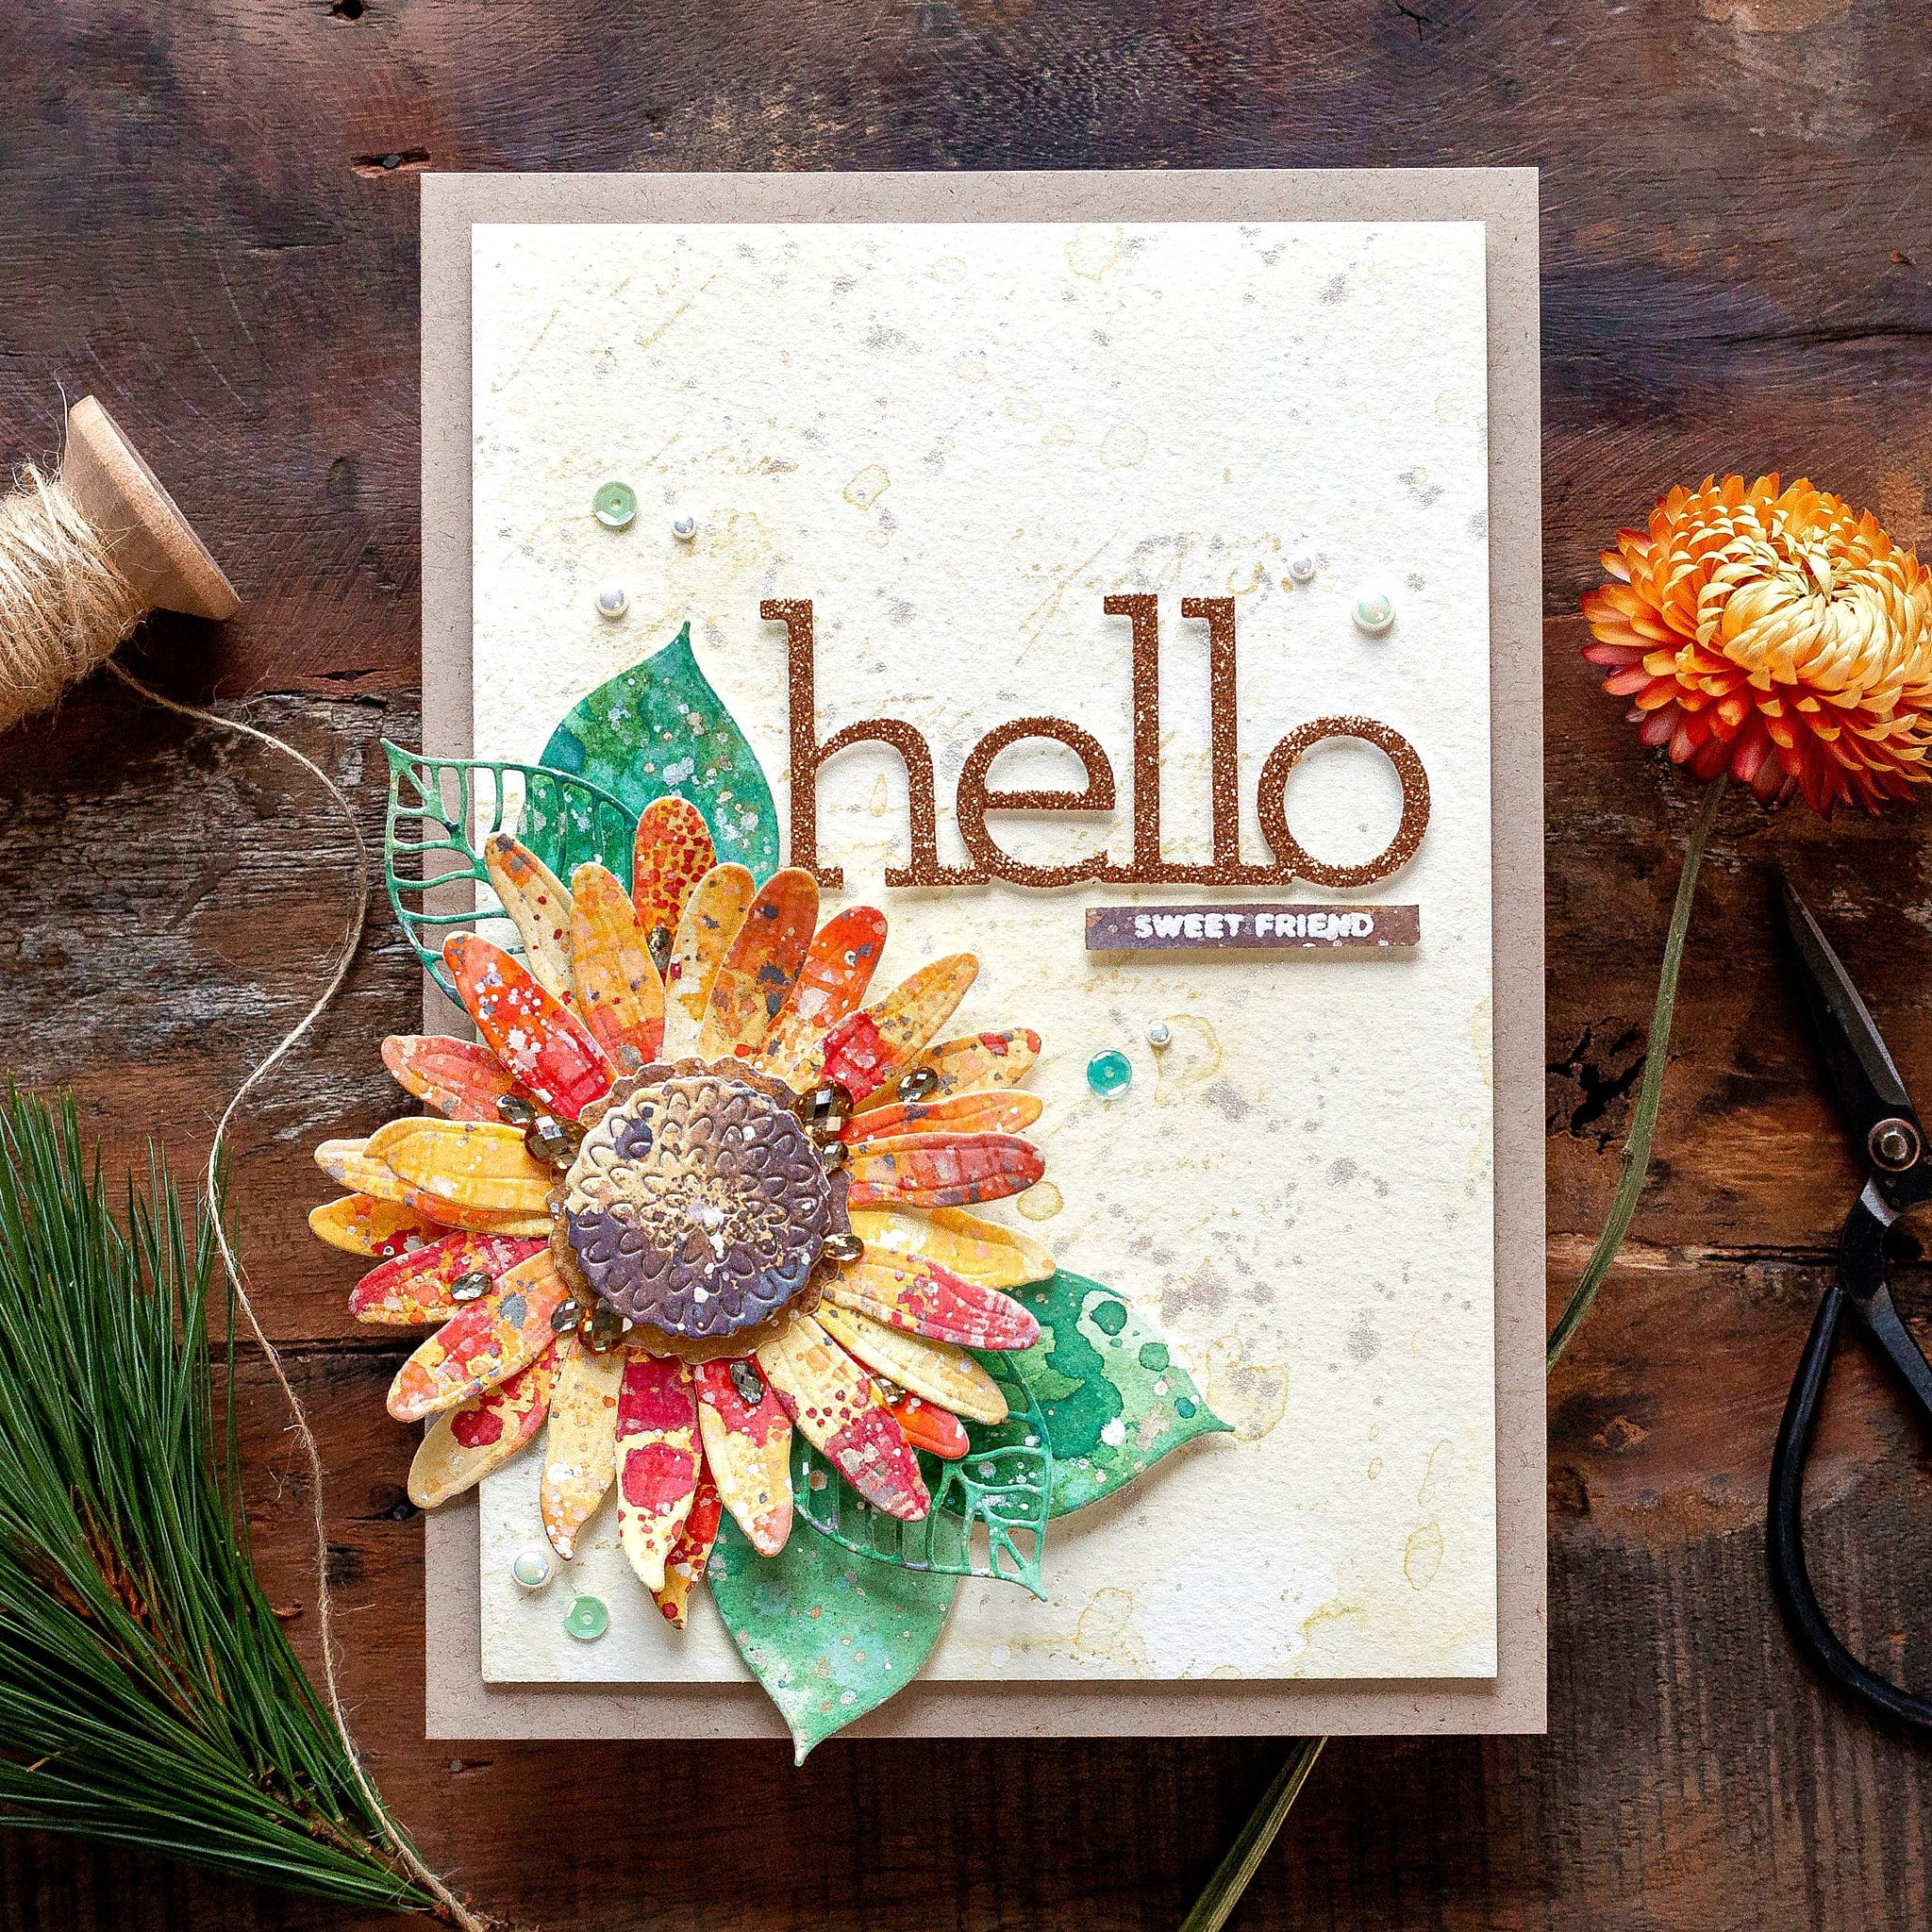 Video tutorial creating a die cut flower as a focal point for a handmade card! Design by Debby Hughes using supplies from Simon Says Stamp #handmadecards #cardmaking #cardmakingideas #cardmakingtechniques  #cardmakingtutorials #handmadecardideas #simonsaysstamp